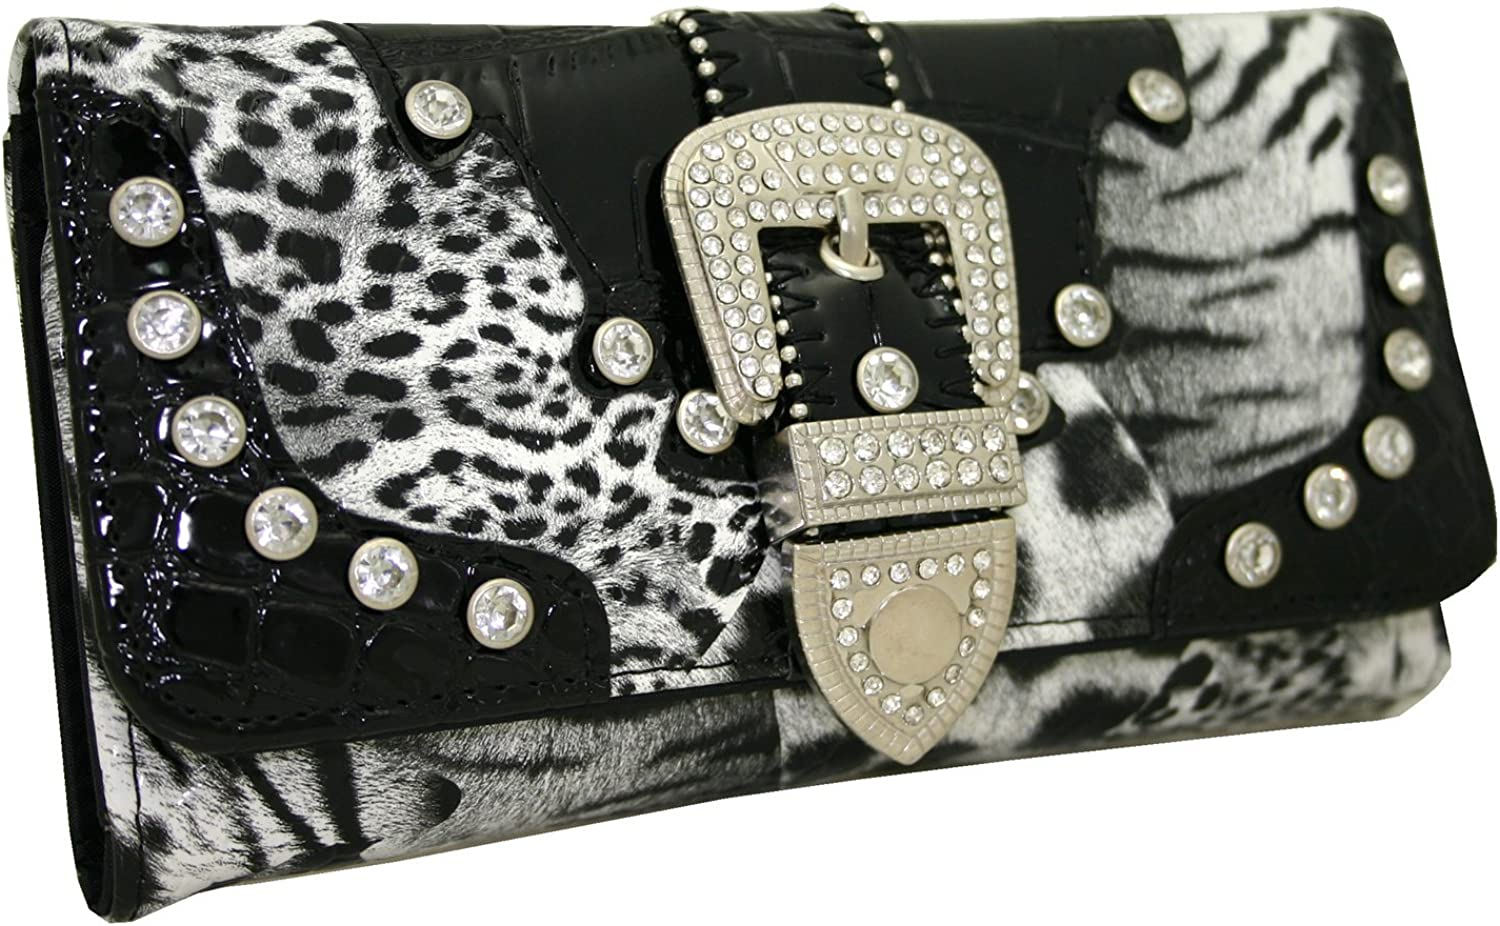 Western Rhinestone Limited time sale Bling Max 61% OFF Buckle Wallet